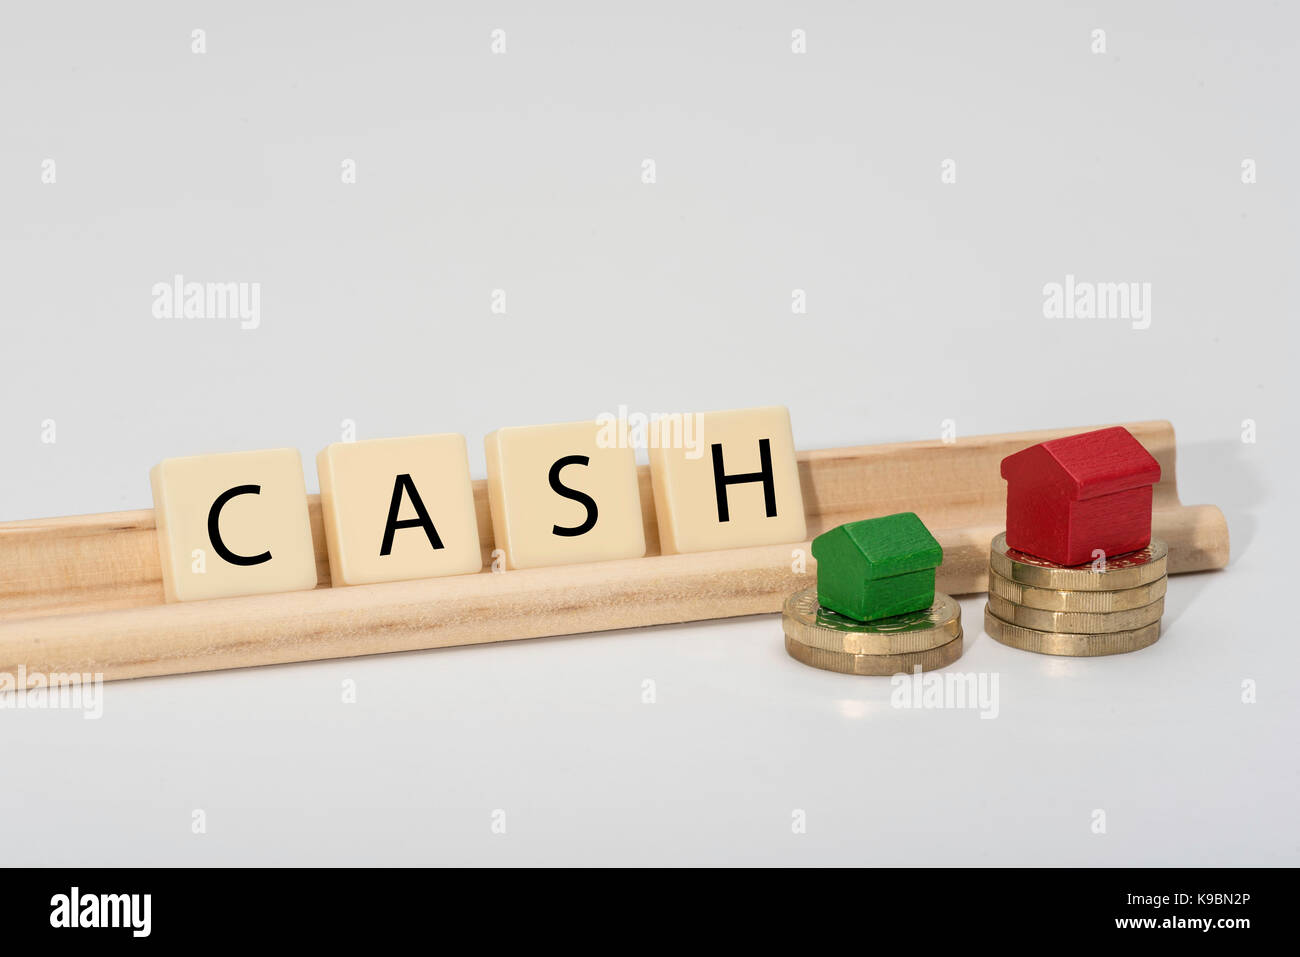 Finance related word spelt out with letter tiles. Isolated on white background with wooden toy houses on top of - Stock Image